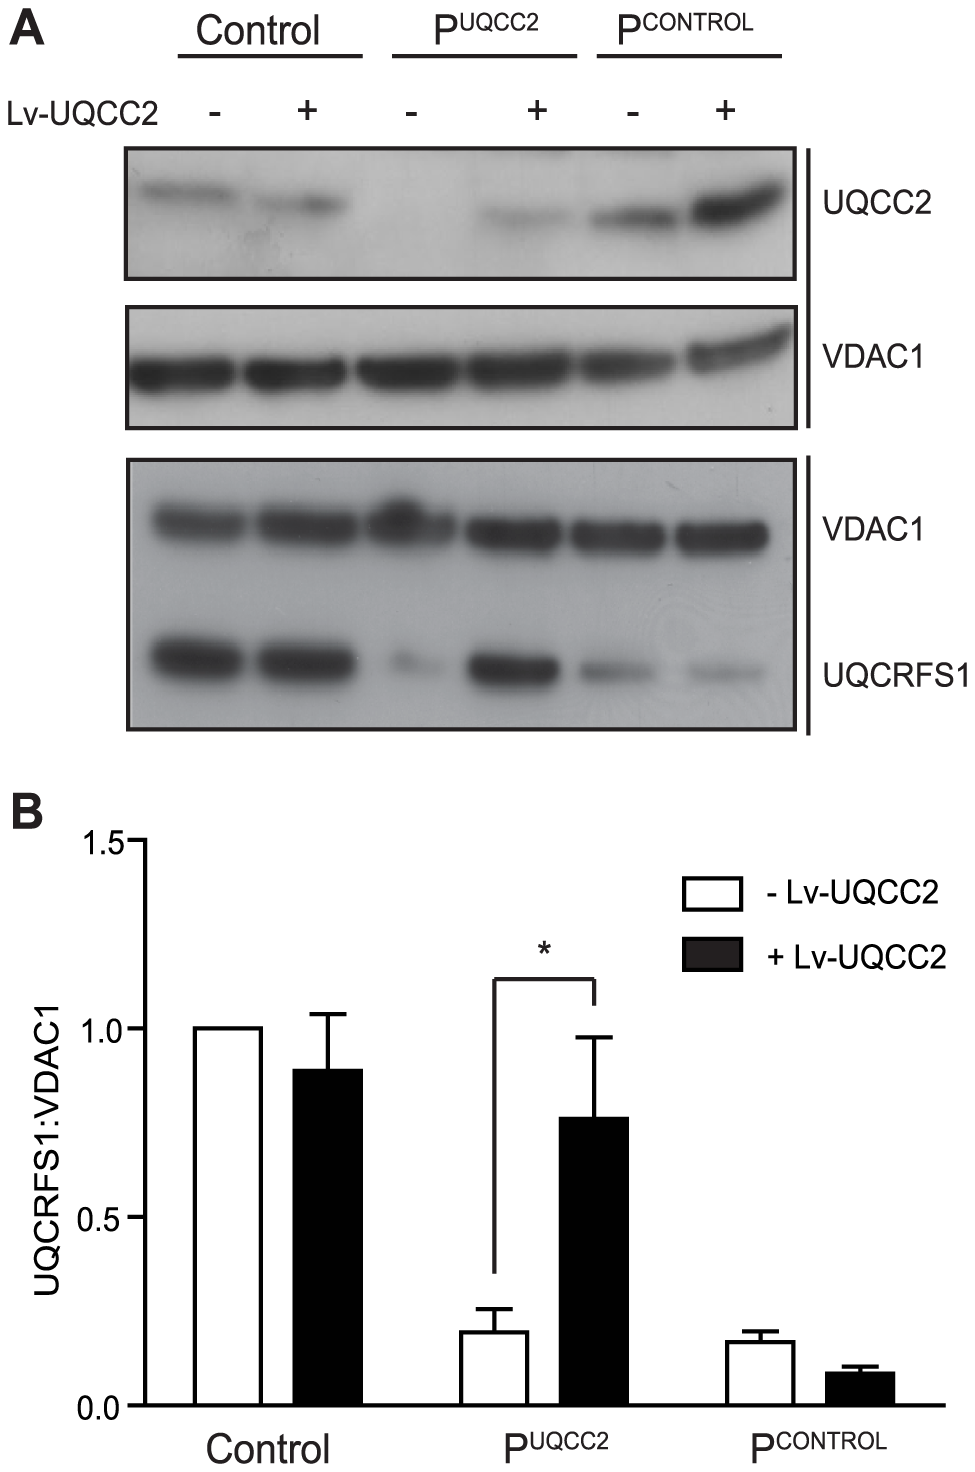 <i>UQCC2</i> mutations are responsible for the complex III defect in P<sup>UQCC2</sup>.